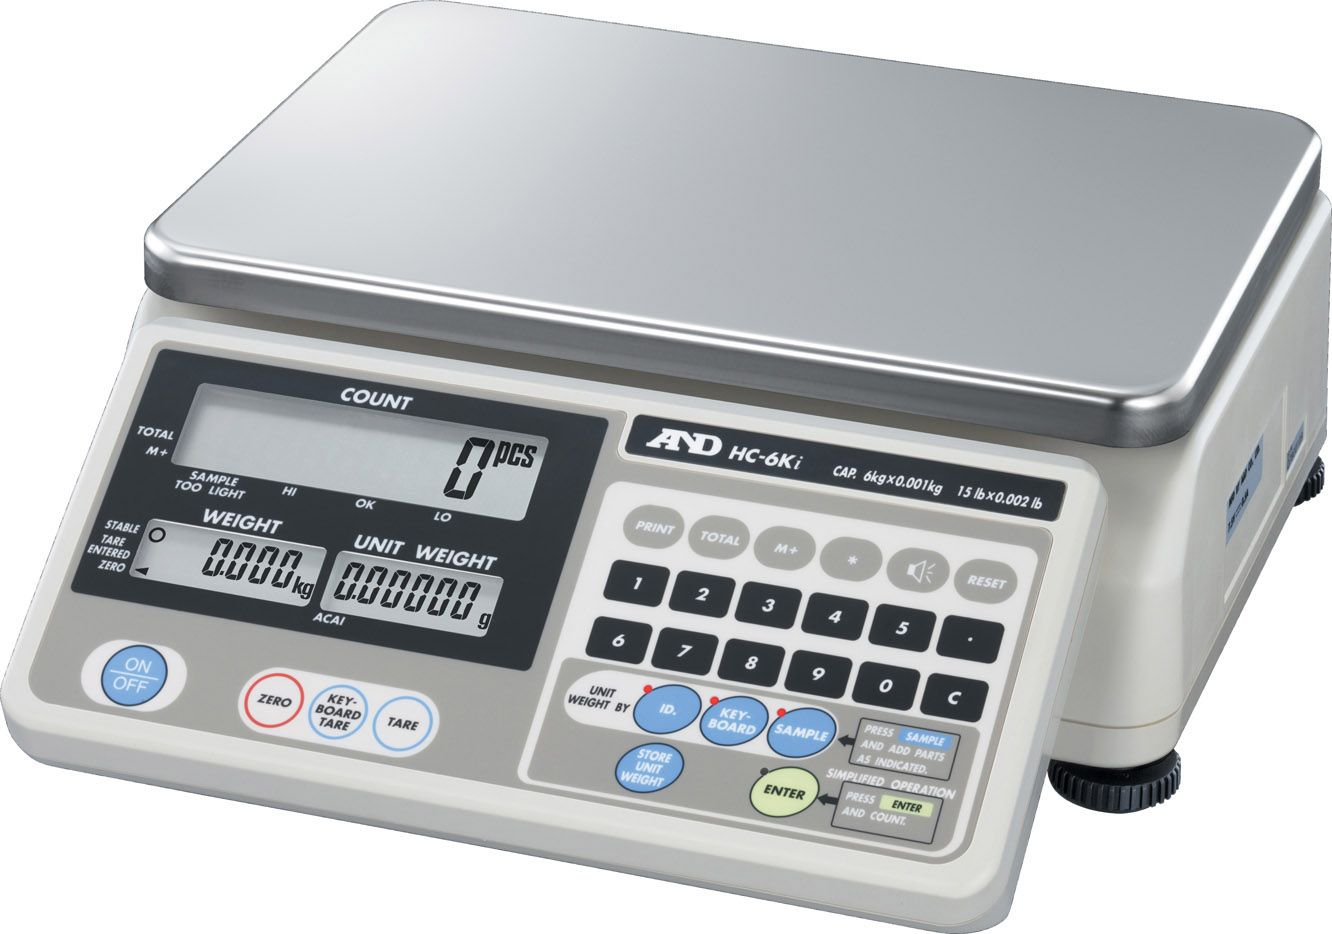 A&D HC-i Series Counting Scales